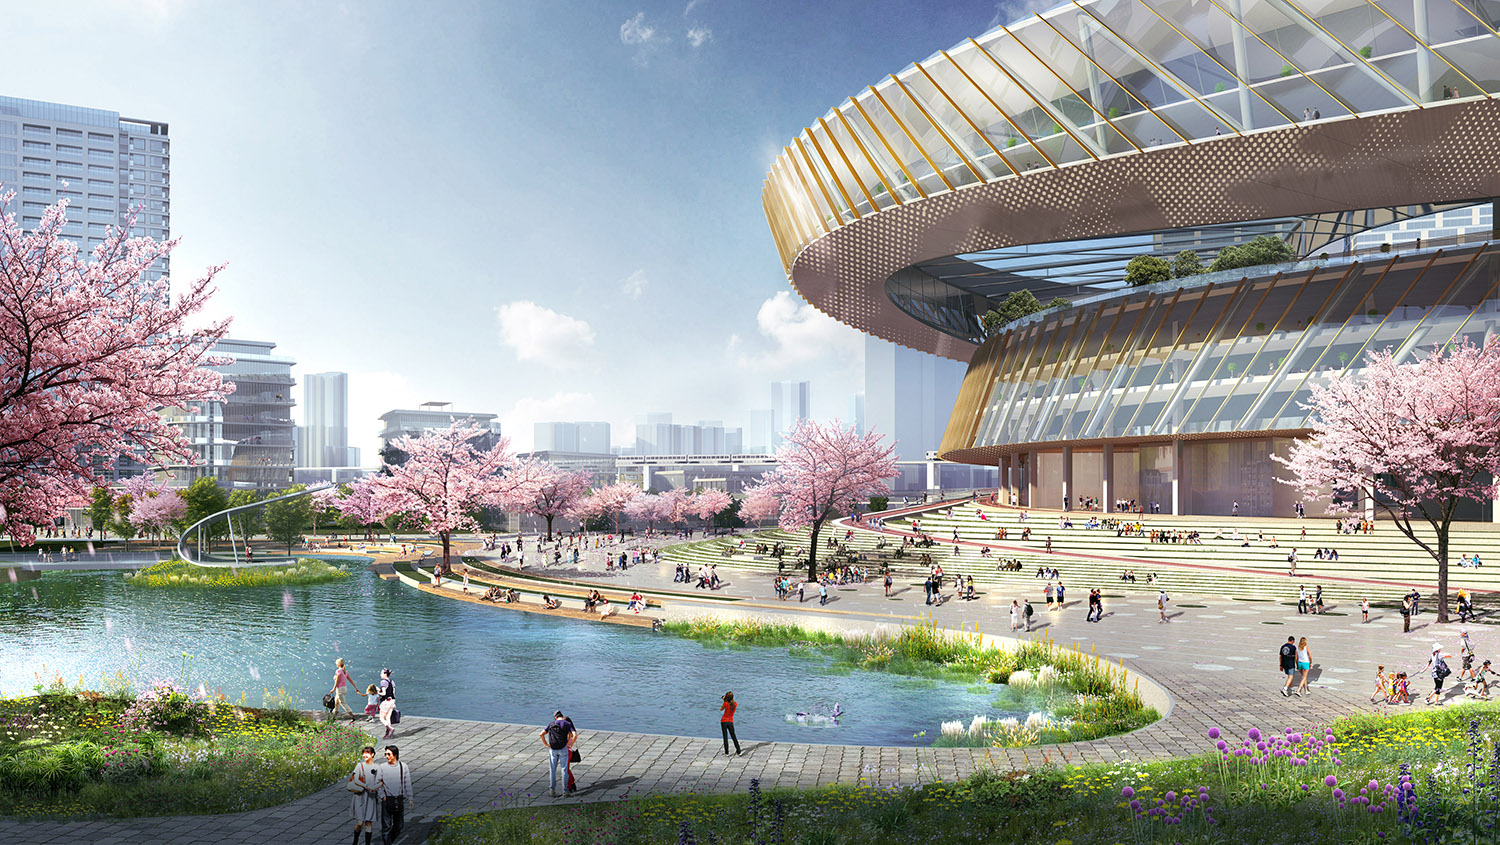 The stadium acts a connective tissue that bridges the vibrancy of the city with the tranquility of the park. SASAKI